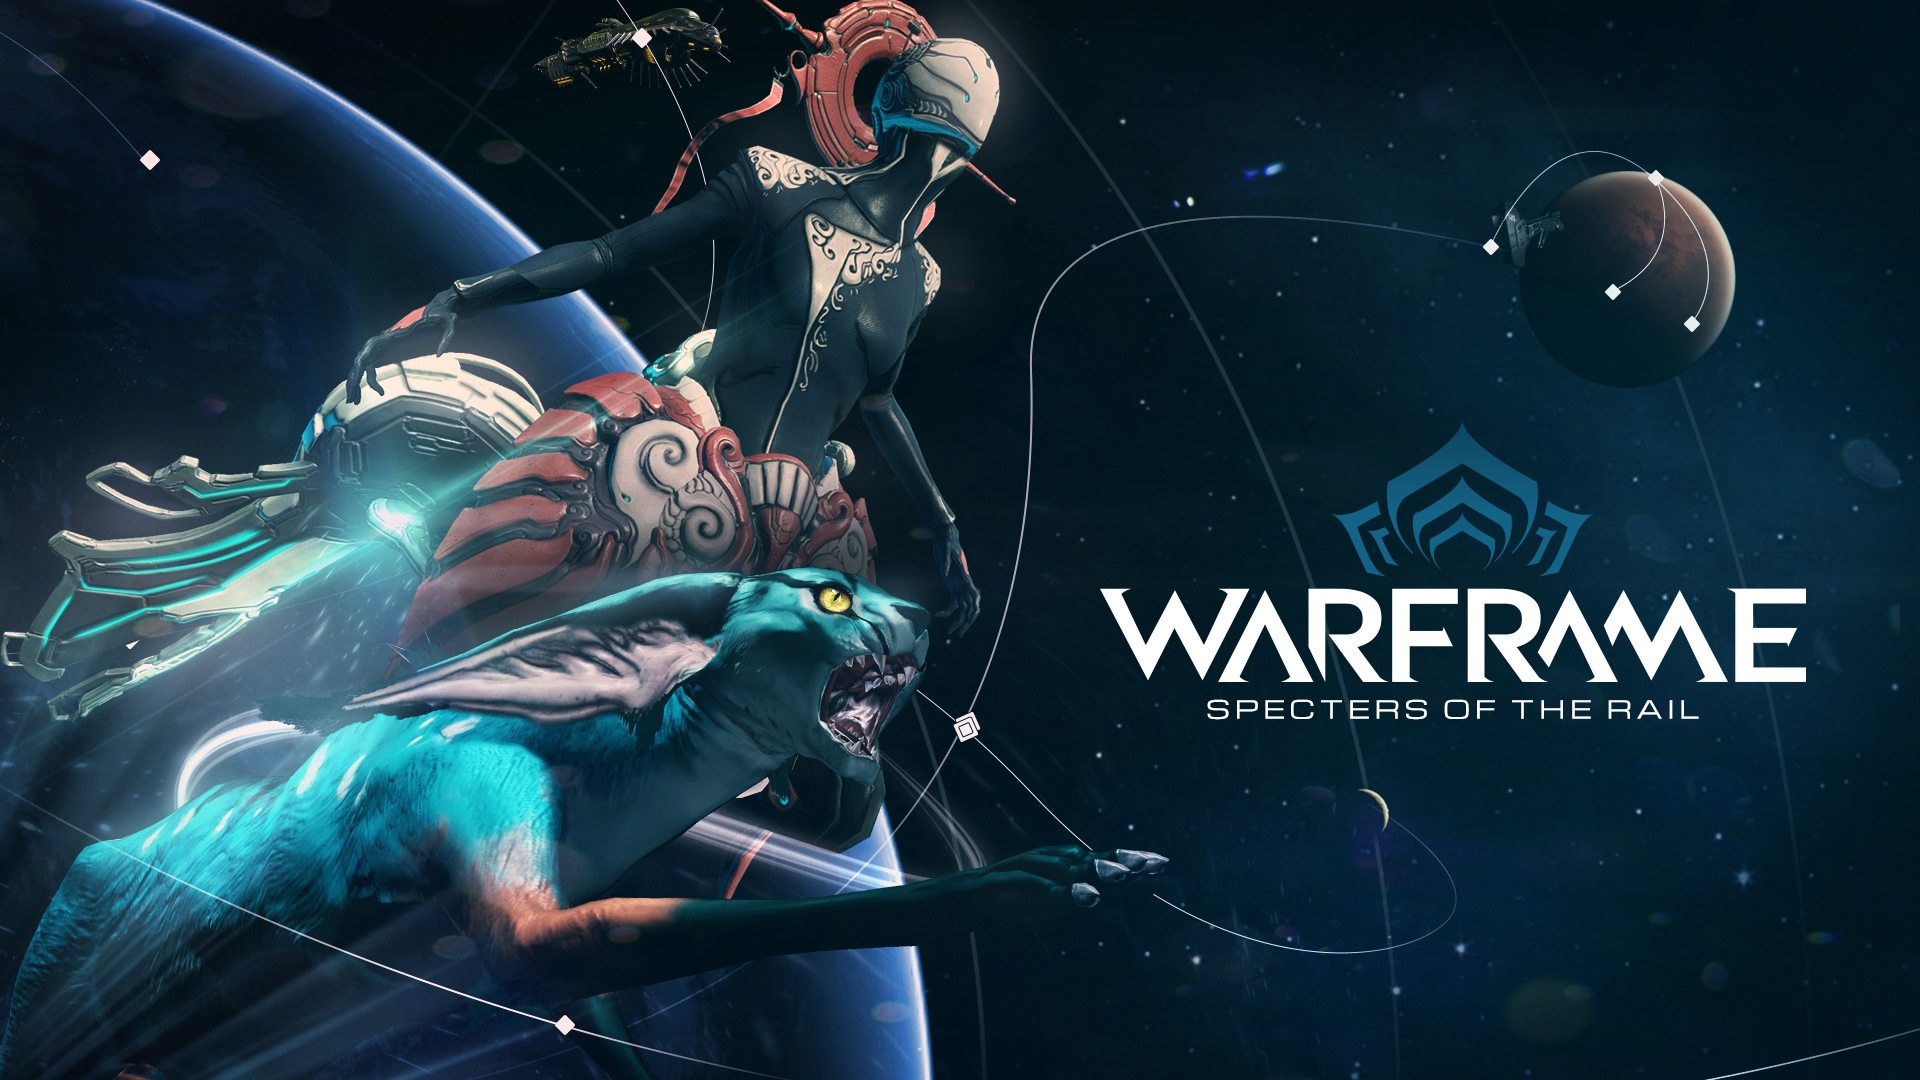 WARFRAME: Specters of the Rail Now Available for PC